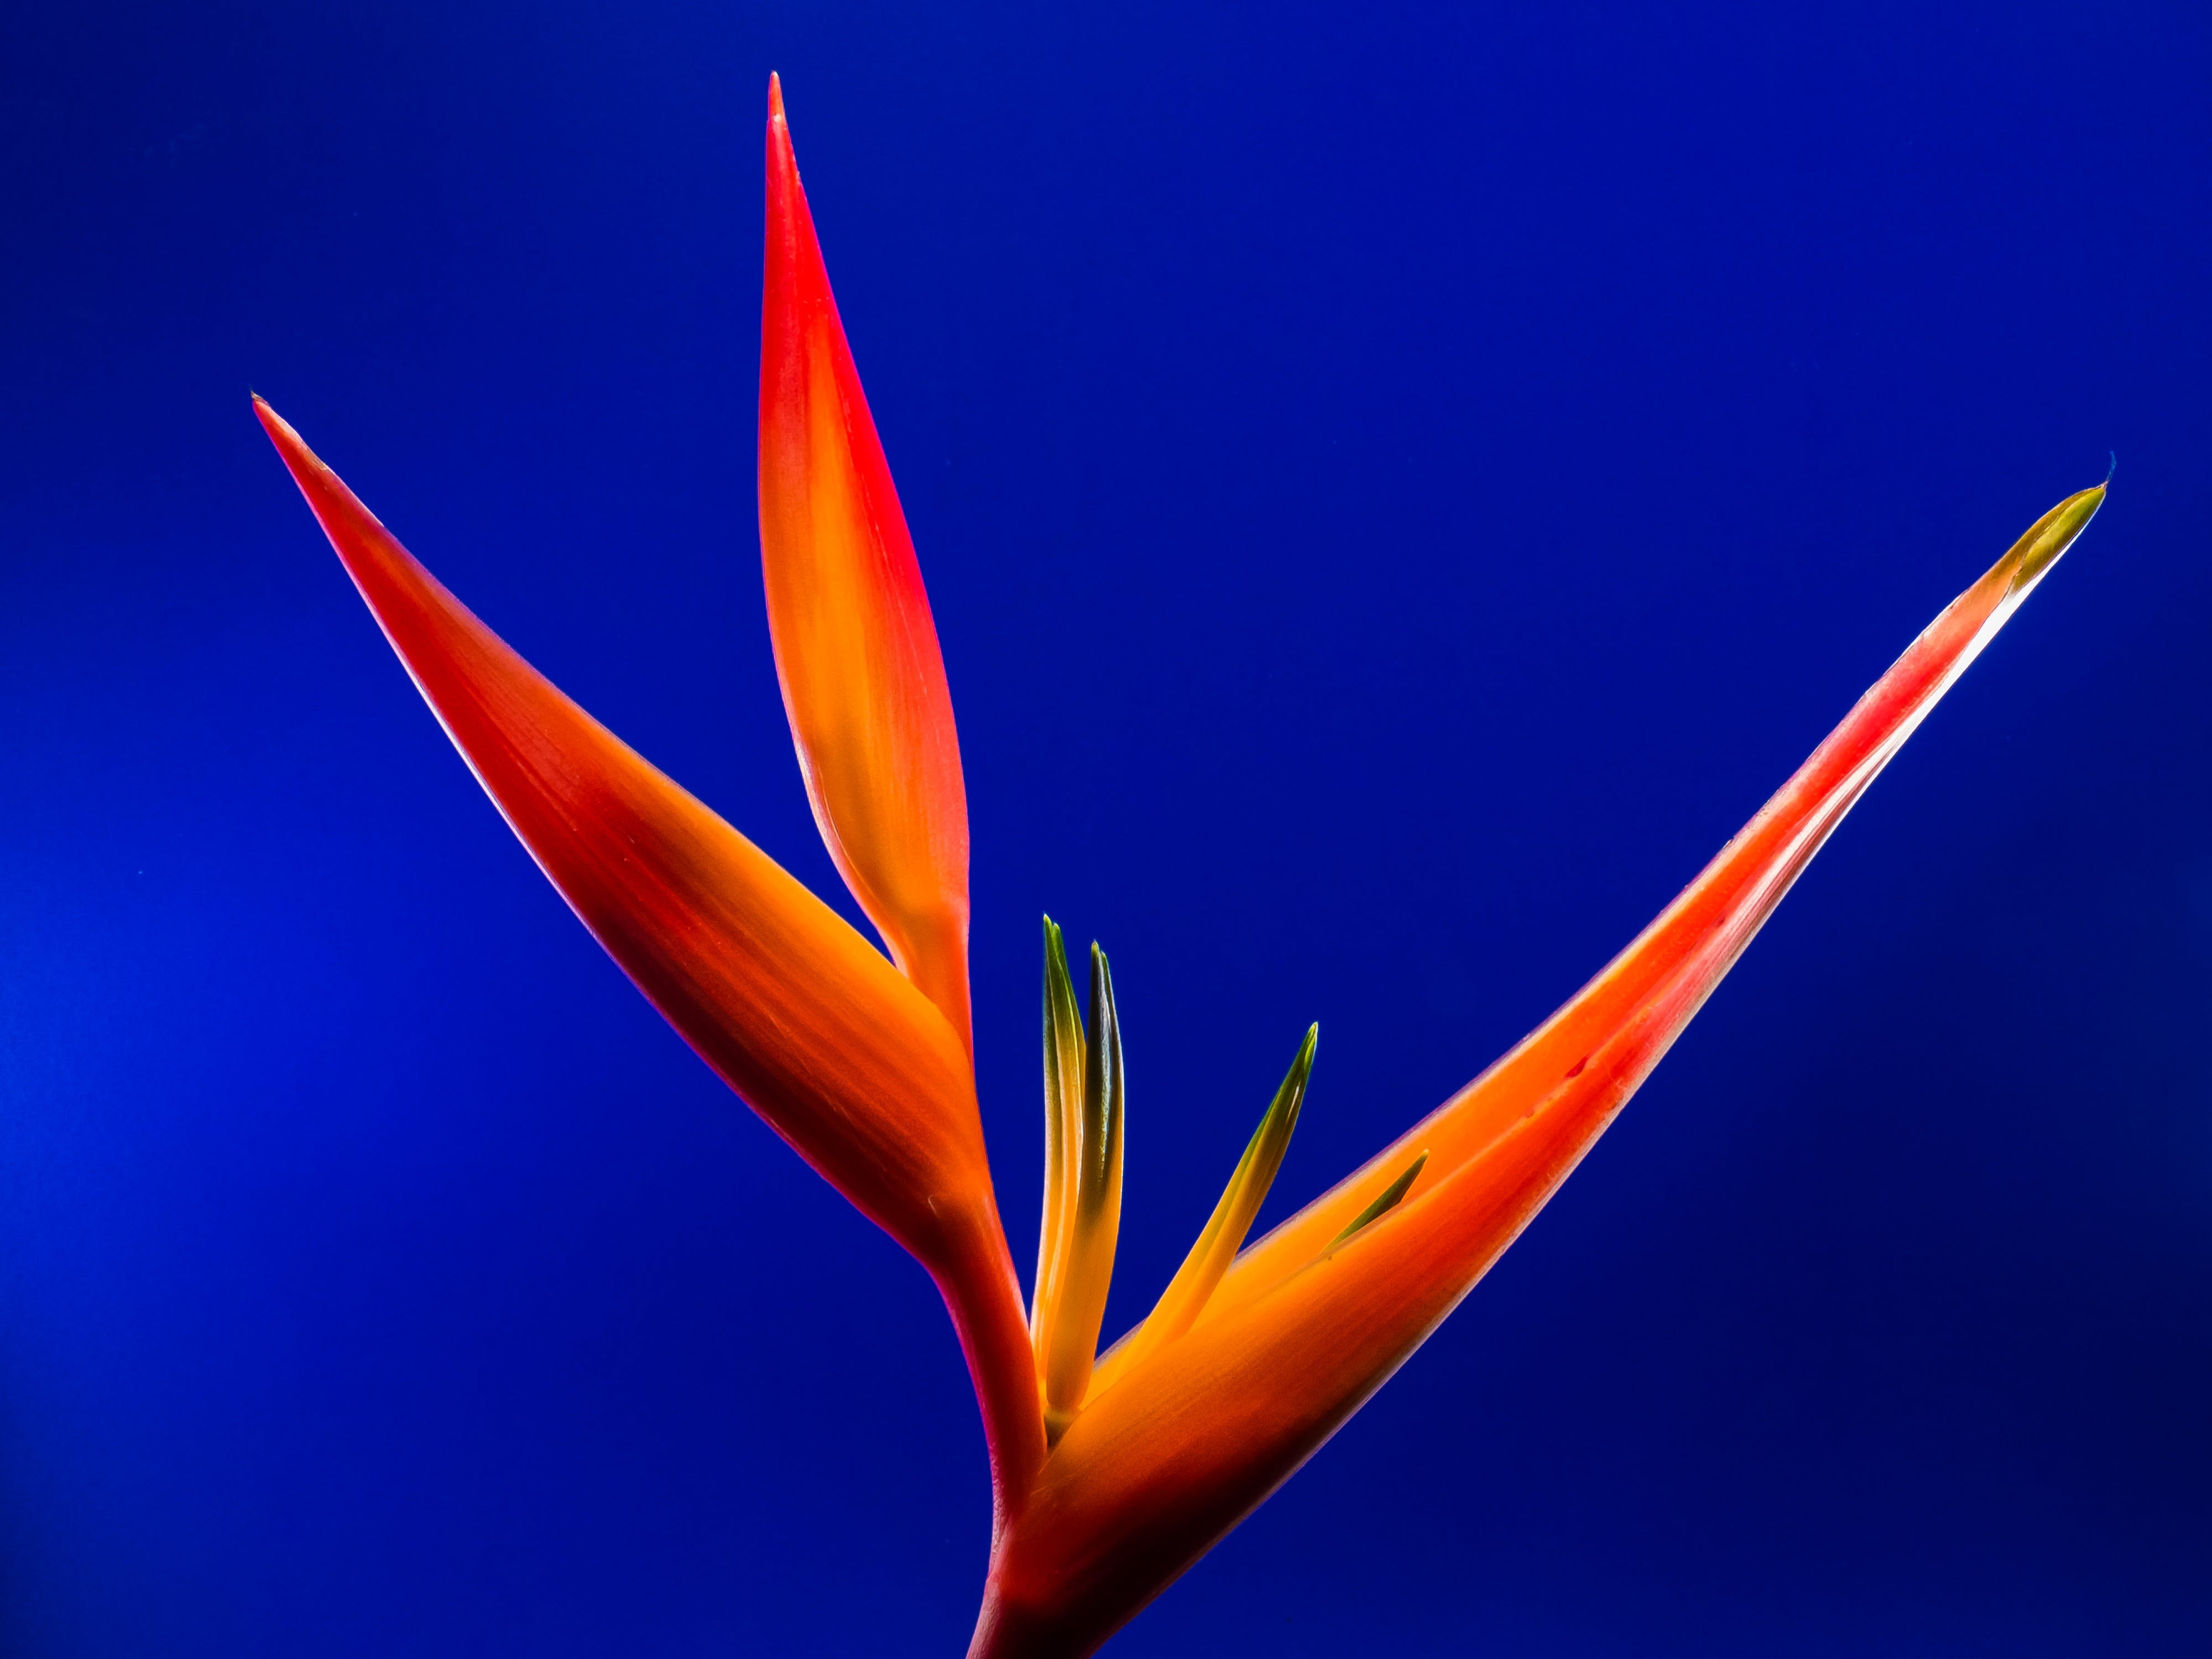 Birds of Paradise Flower in Macro Photography